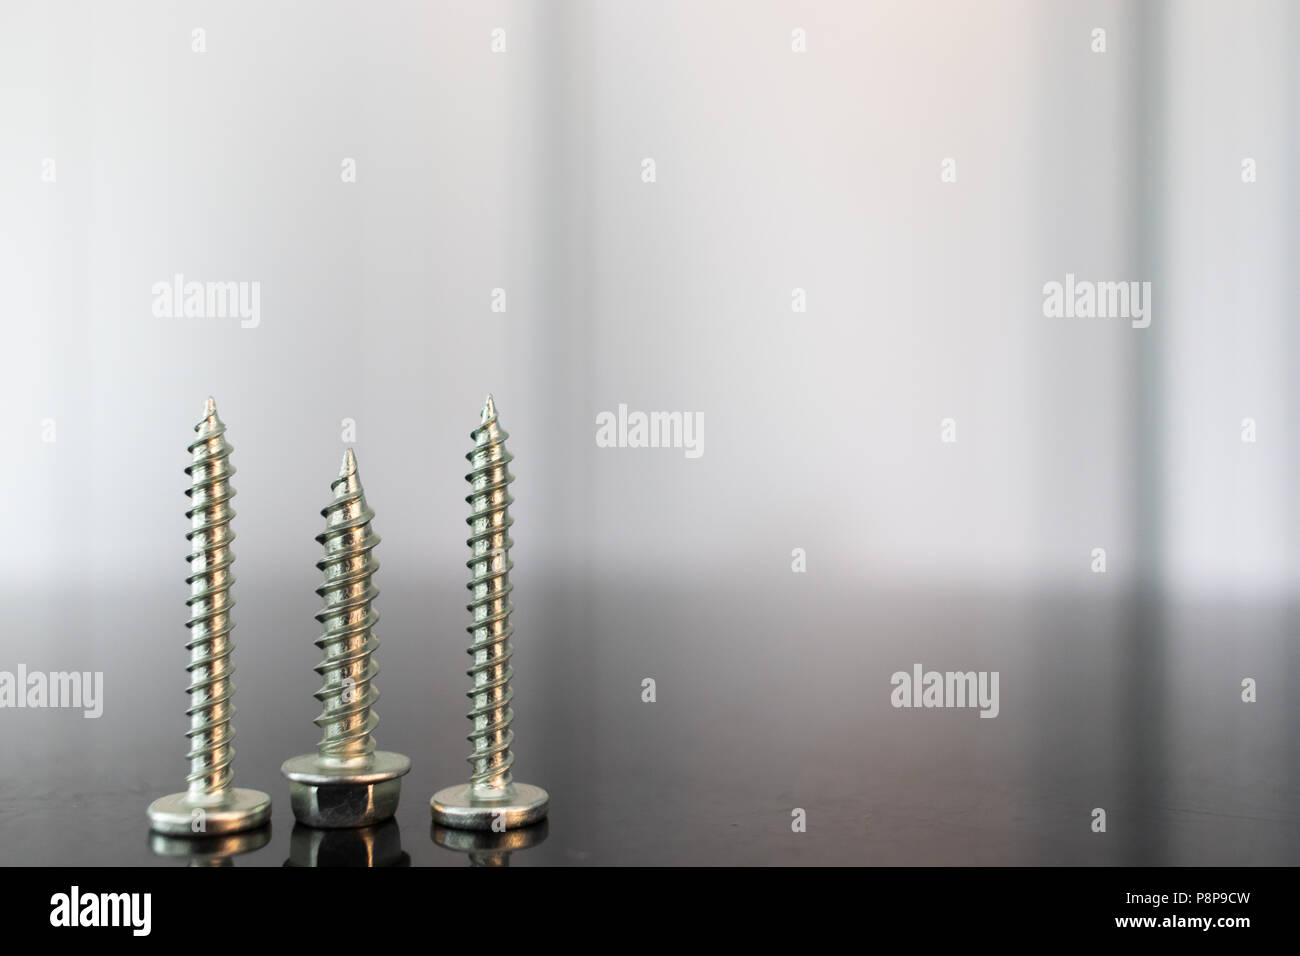 Roofing nails isolated on table with reflections - Stock Image